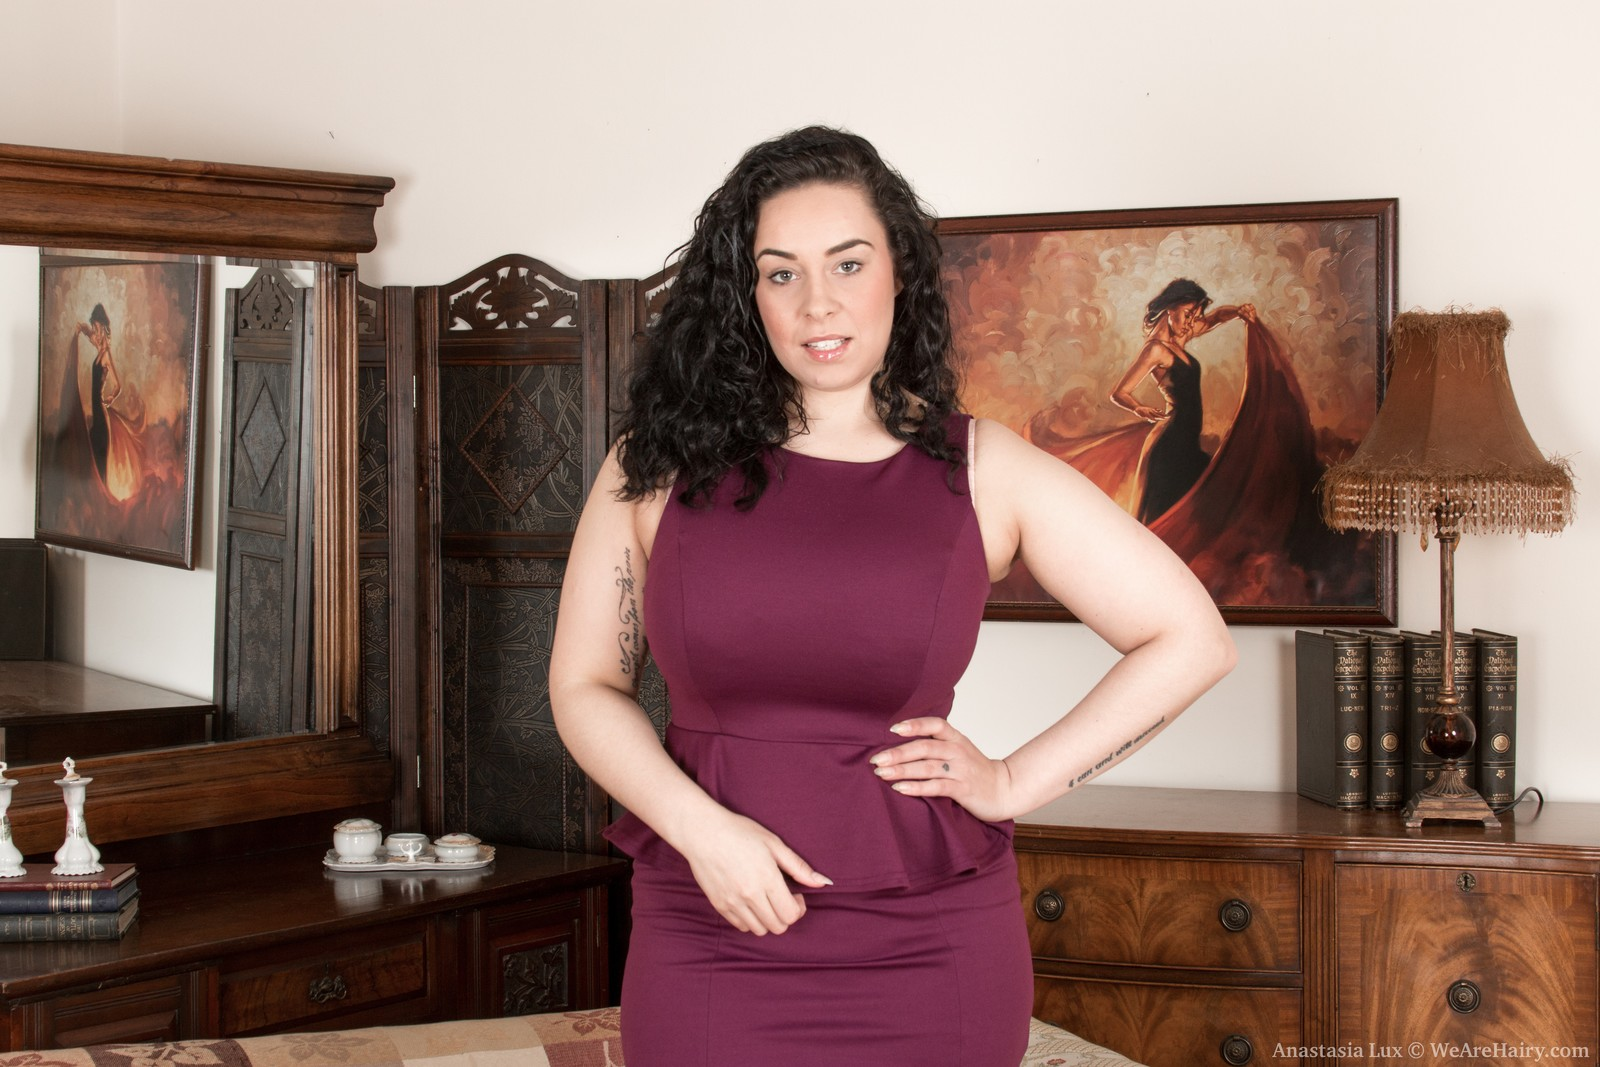 Huge-titted Anastasia Lux strips undressed in the living room and gives us a look at her curly bod